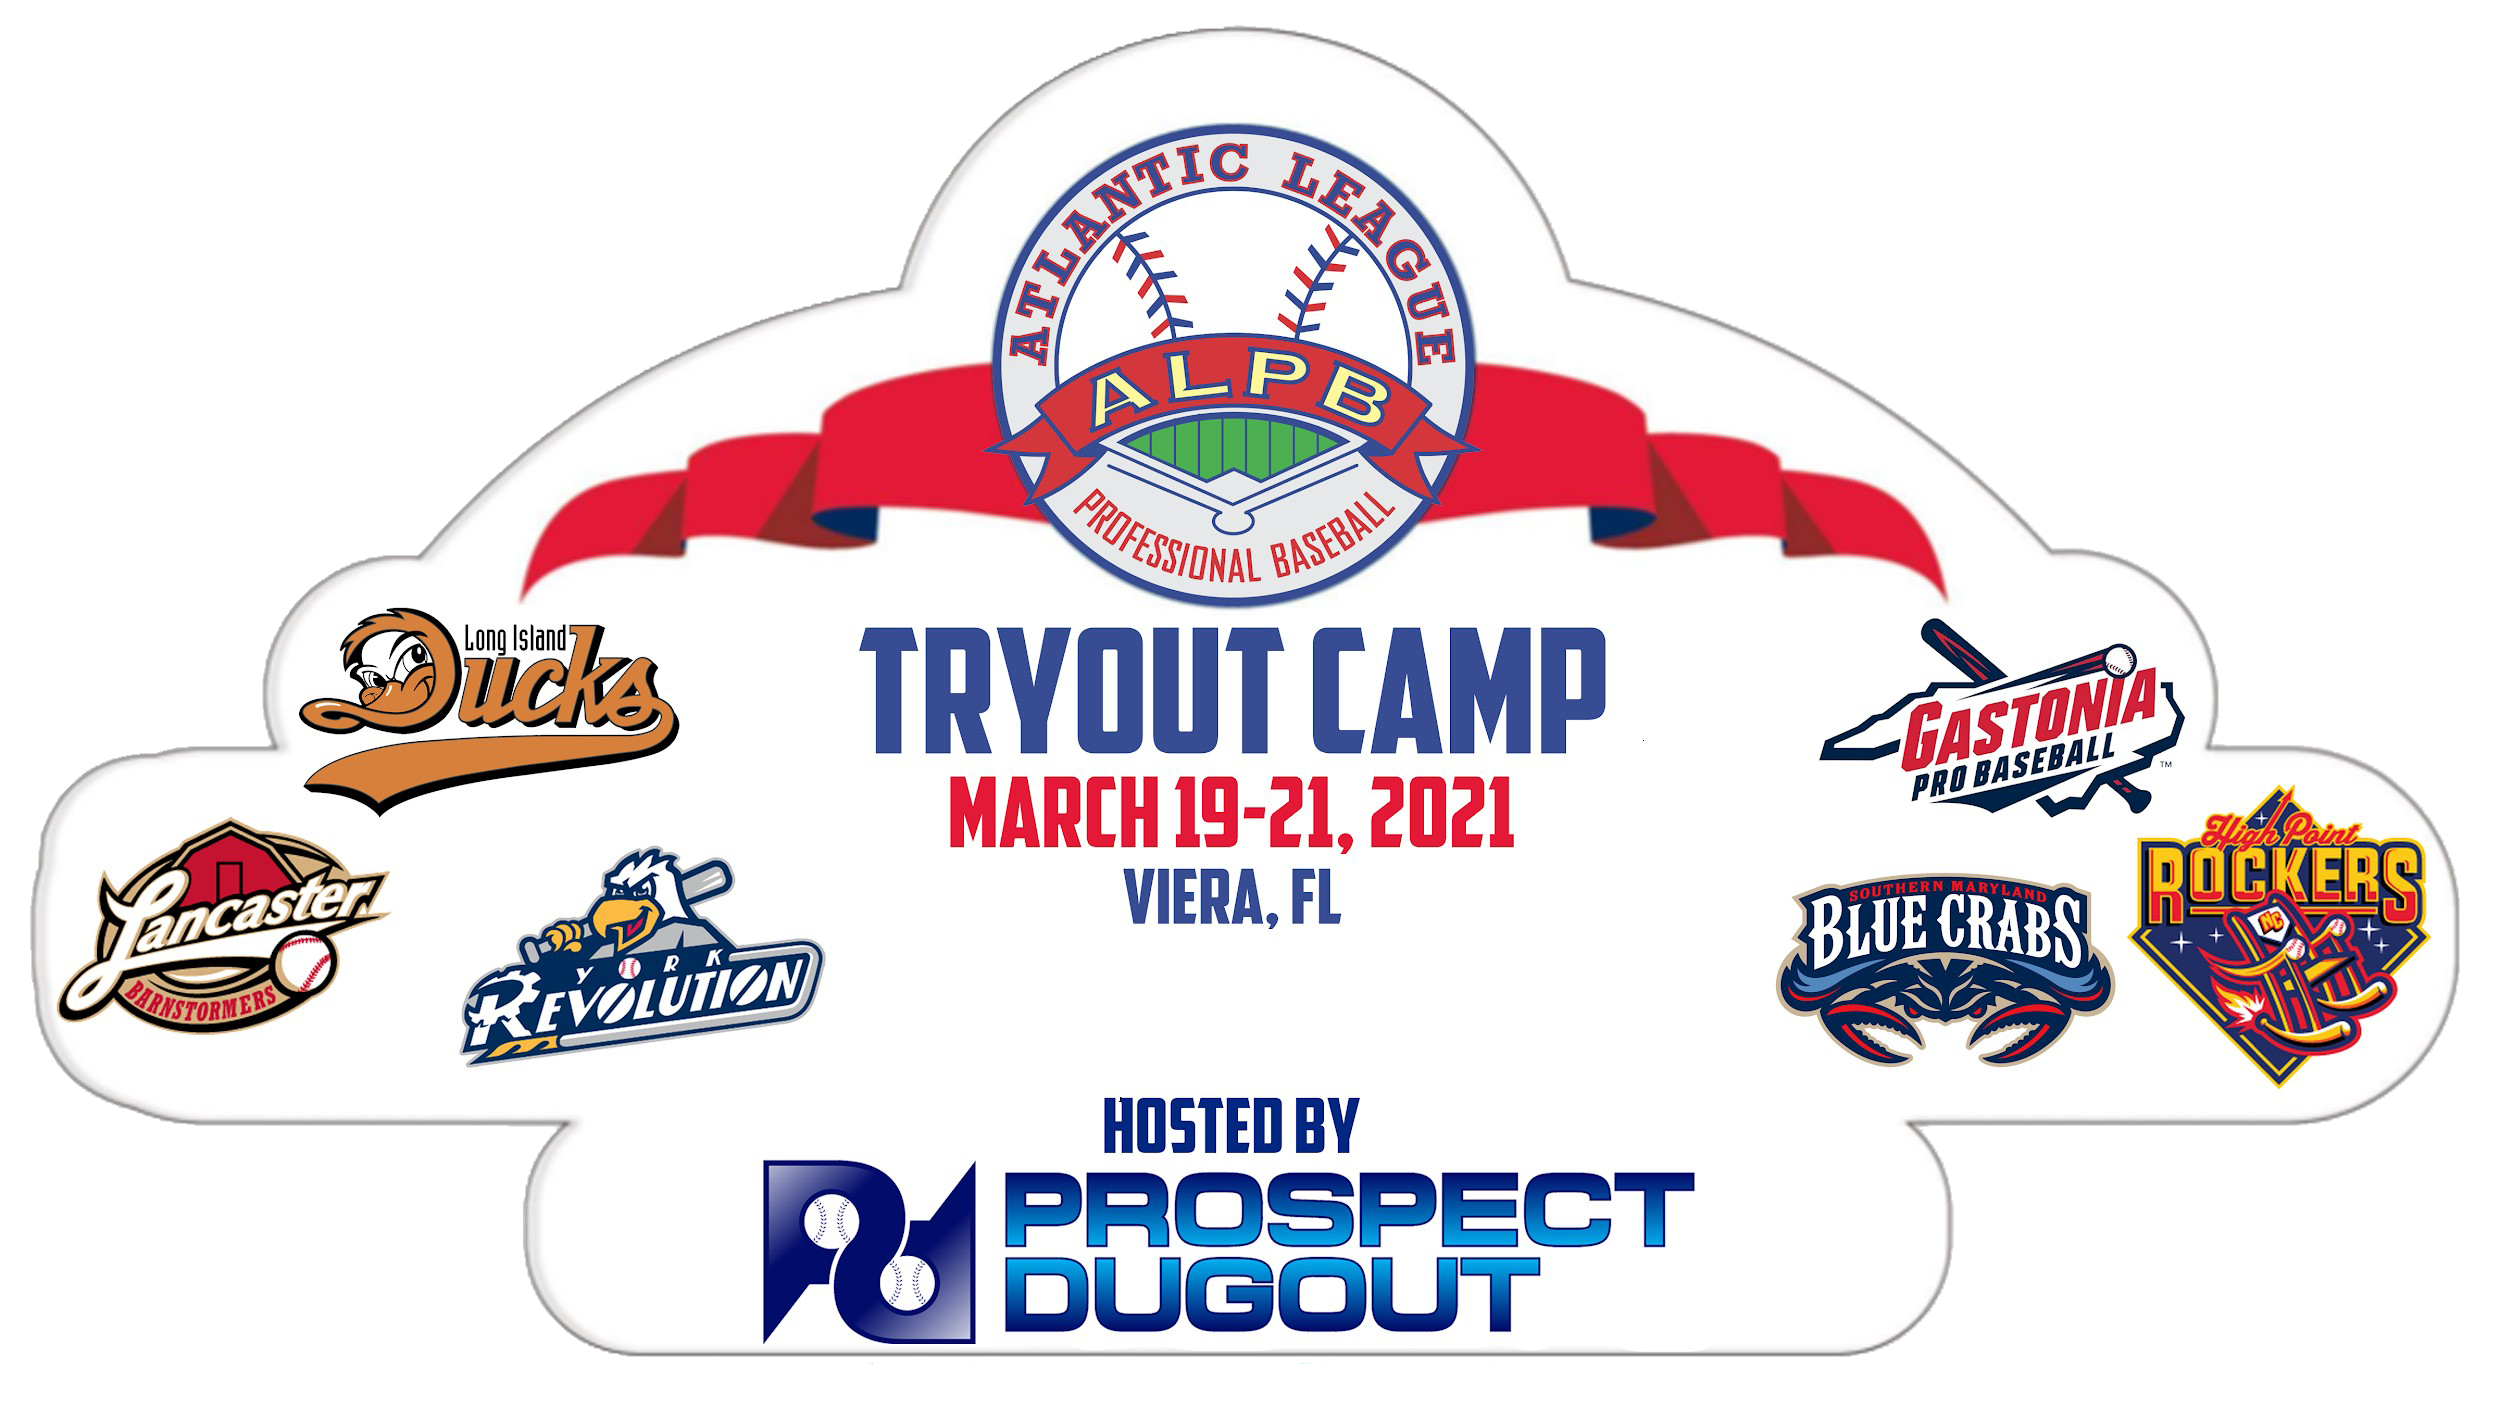 ATLANTIC LEAGUE, PROSPECT DUGOUT ANNOUNCE  SPRING PRO BASEBALL TRYOUT CAMP